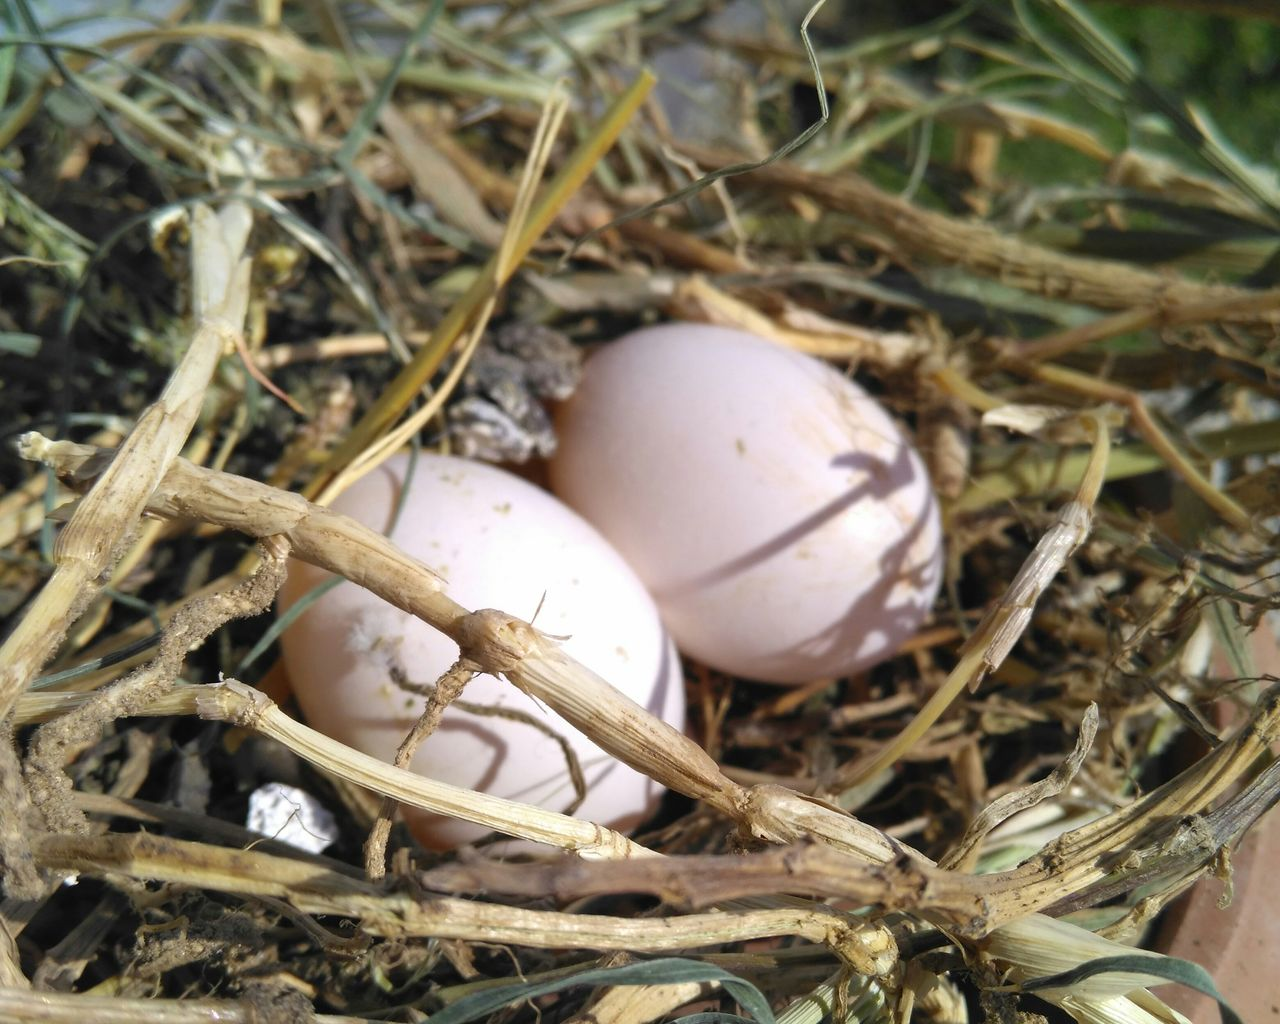 egg, animal egg, animal nest, food, food and drink, nature, beginnings, no people, new life, vulnerability, close-up, bird nest, fragility, nest egg, day, plant, high angle view, bird, outdoors, straw